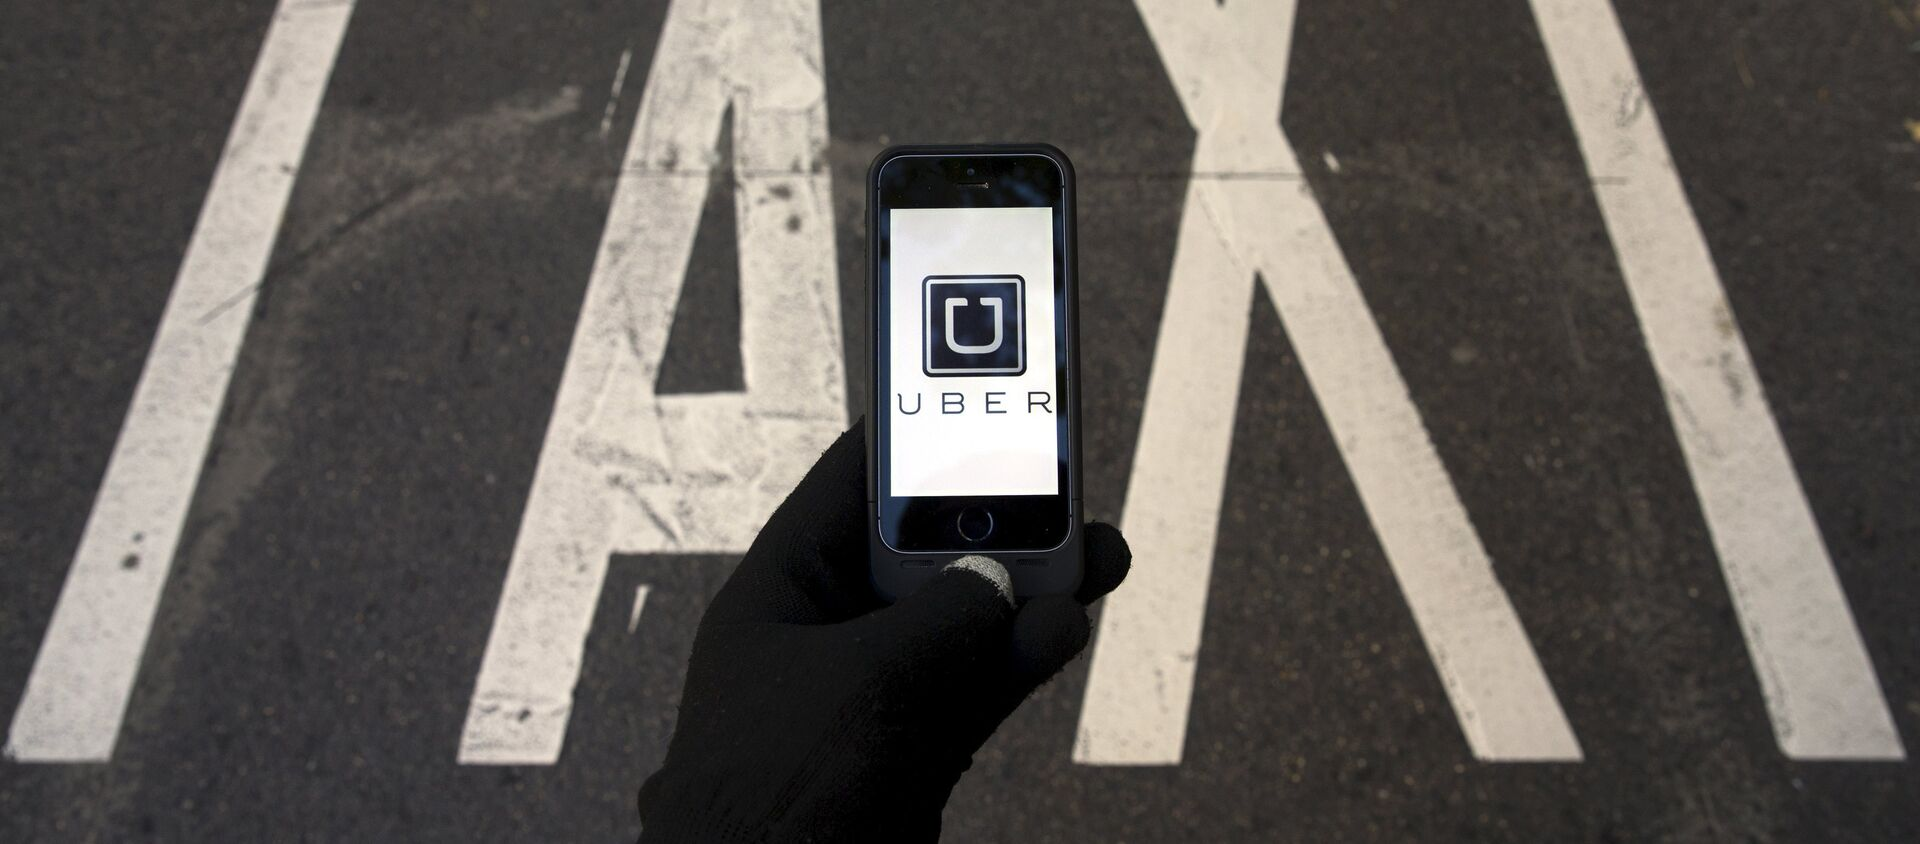 The logo of car-sharing service app Uber on a smartphone over a reserved lane for taxis in a street is seen in this file photo illustration taken in Madrid on December 10, 2014 - Sputnik Mundo, 1920, 02.02.2020